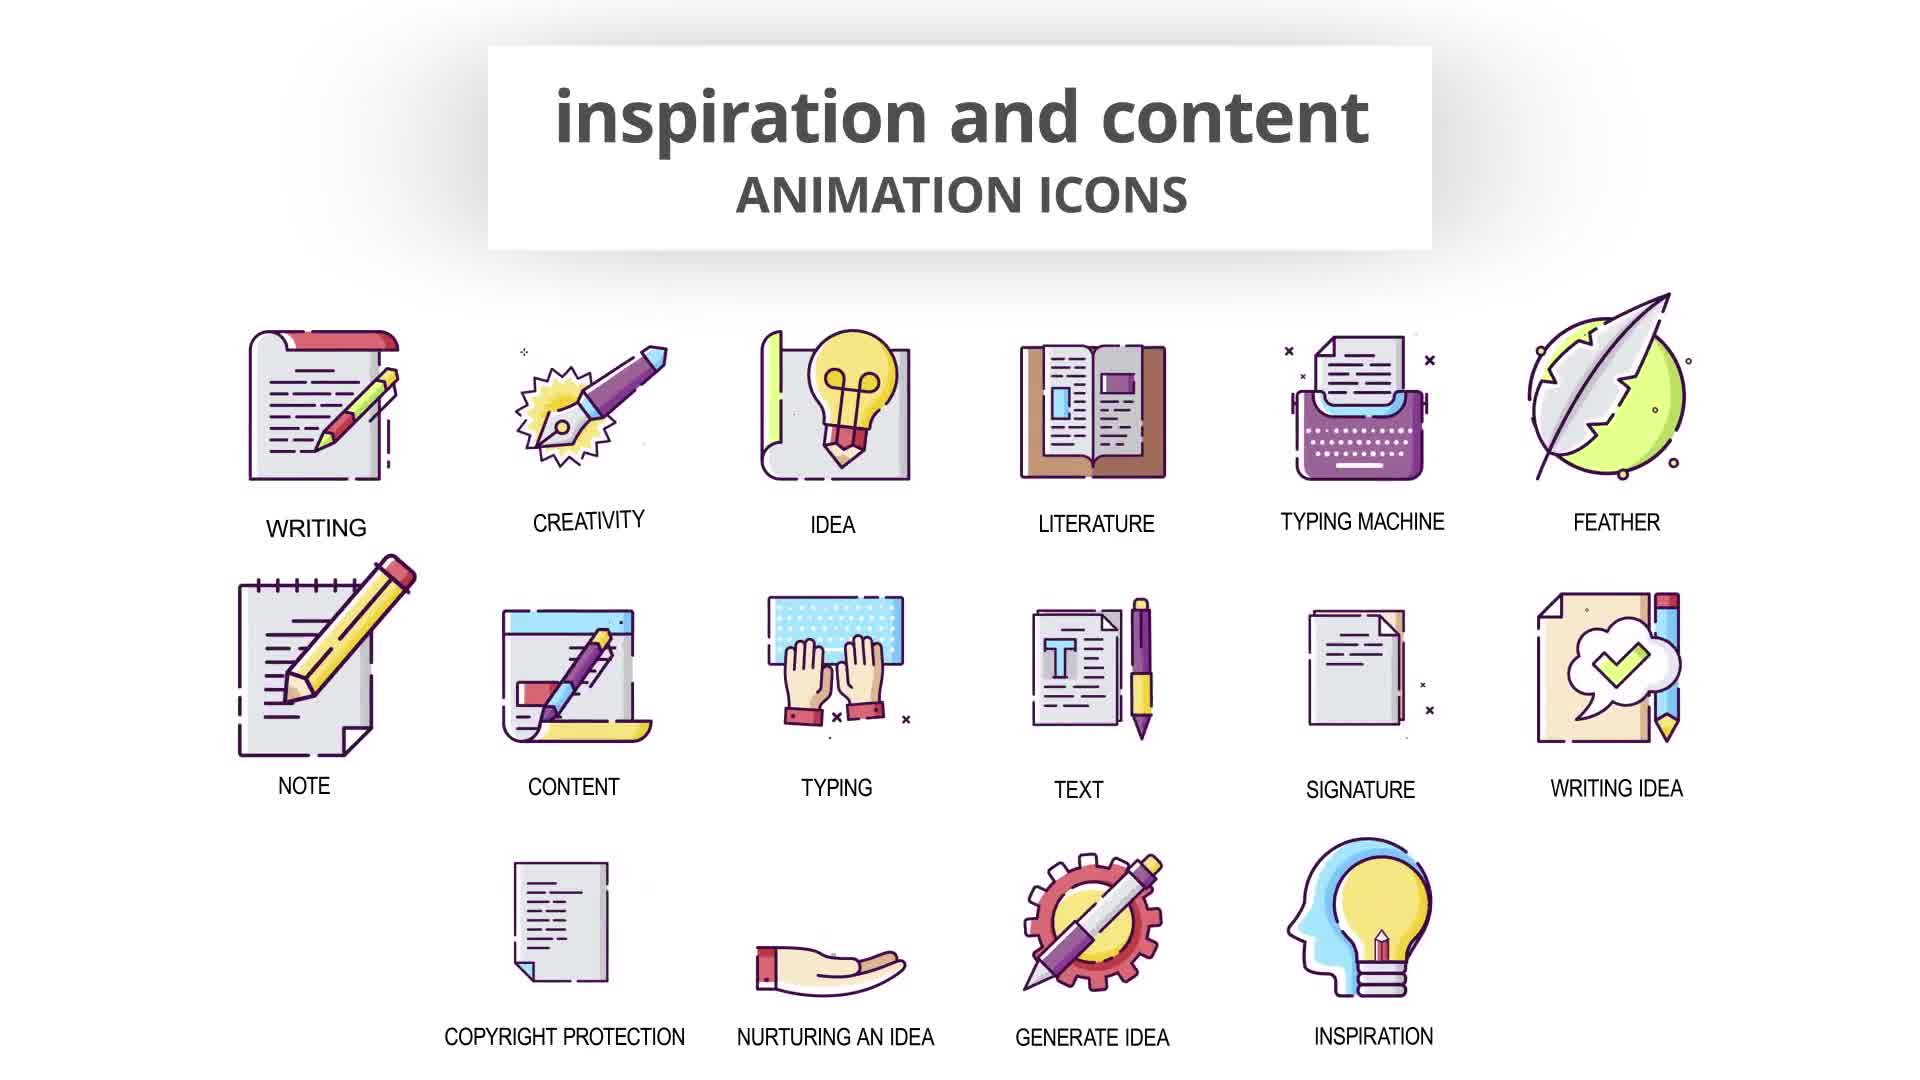 Inspiration & Content Animation Icons Videohive 30041554 After Effects Image 9